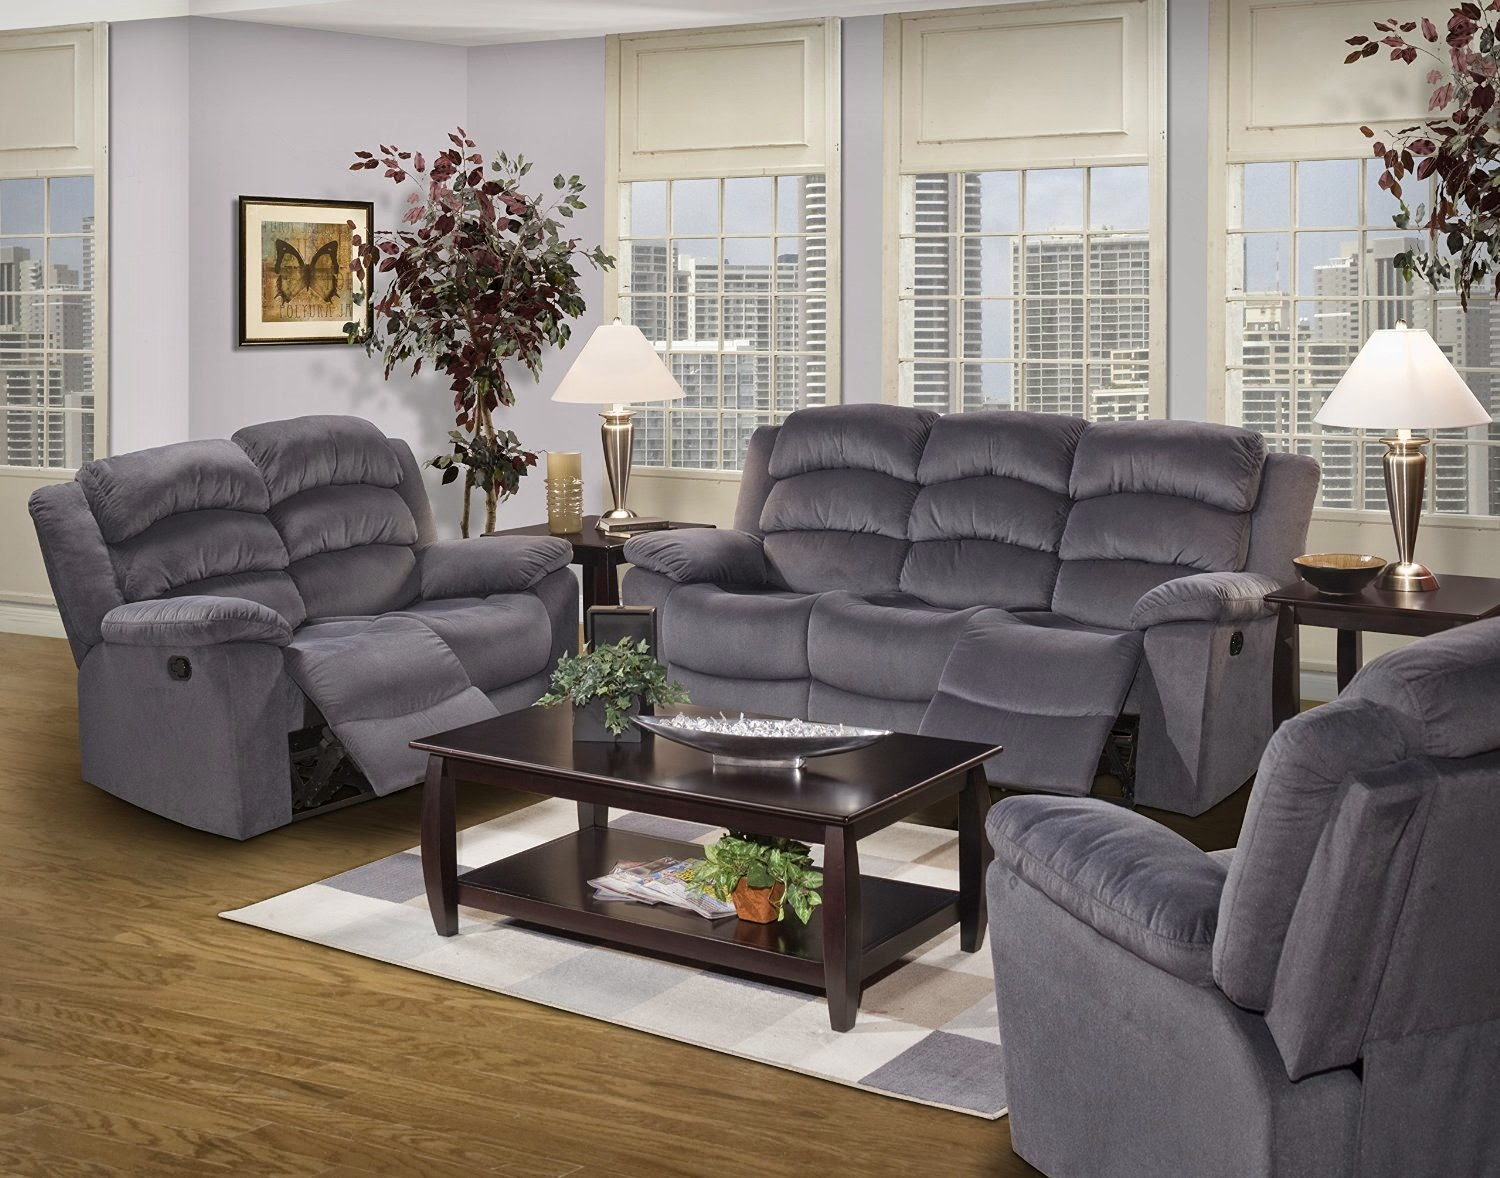 Lane Triple Reclining Sofa Polyester Fabric For Cheap Recliner Sofas Sale